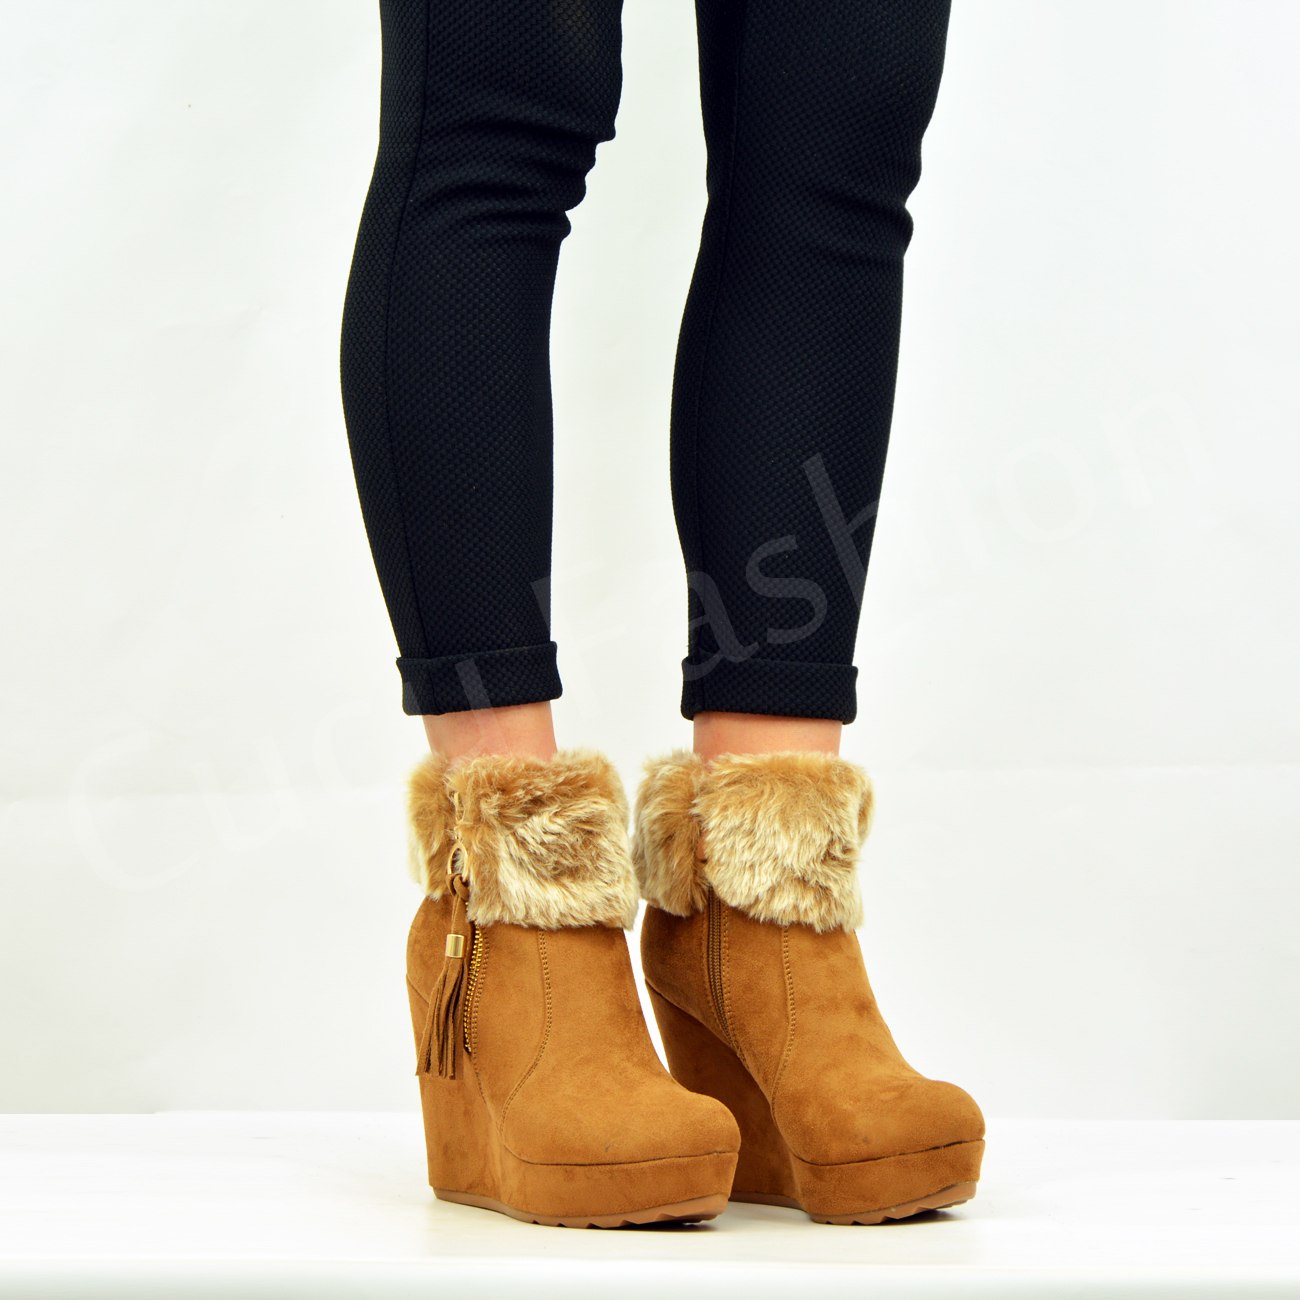 New Womens Fur Lined Ankle Boots Ladies Wedge Platforms